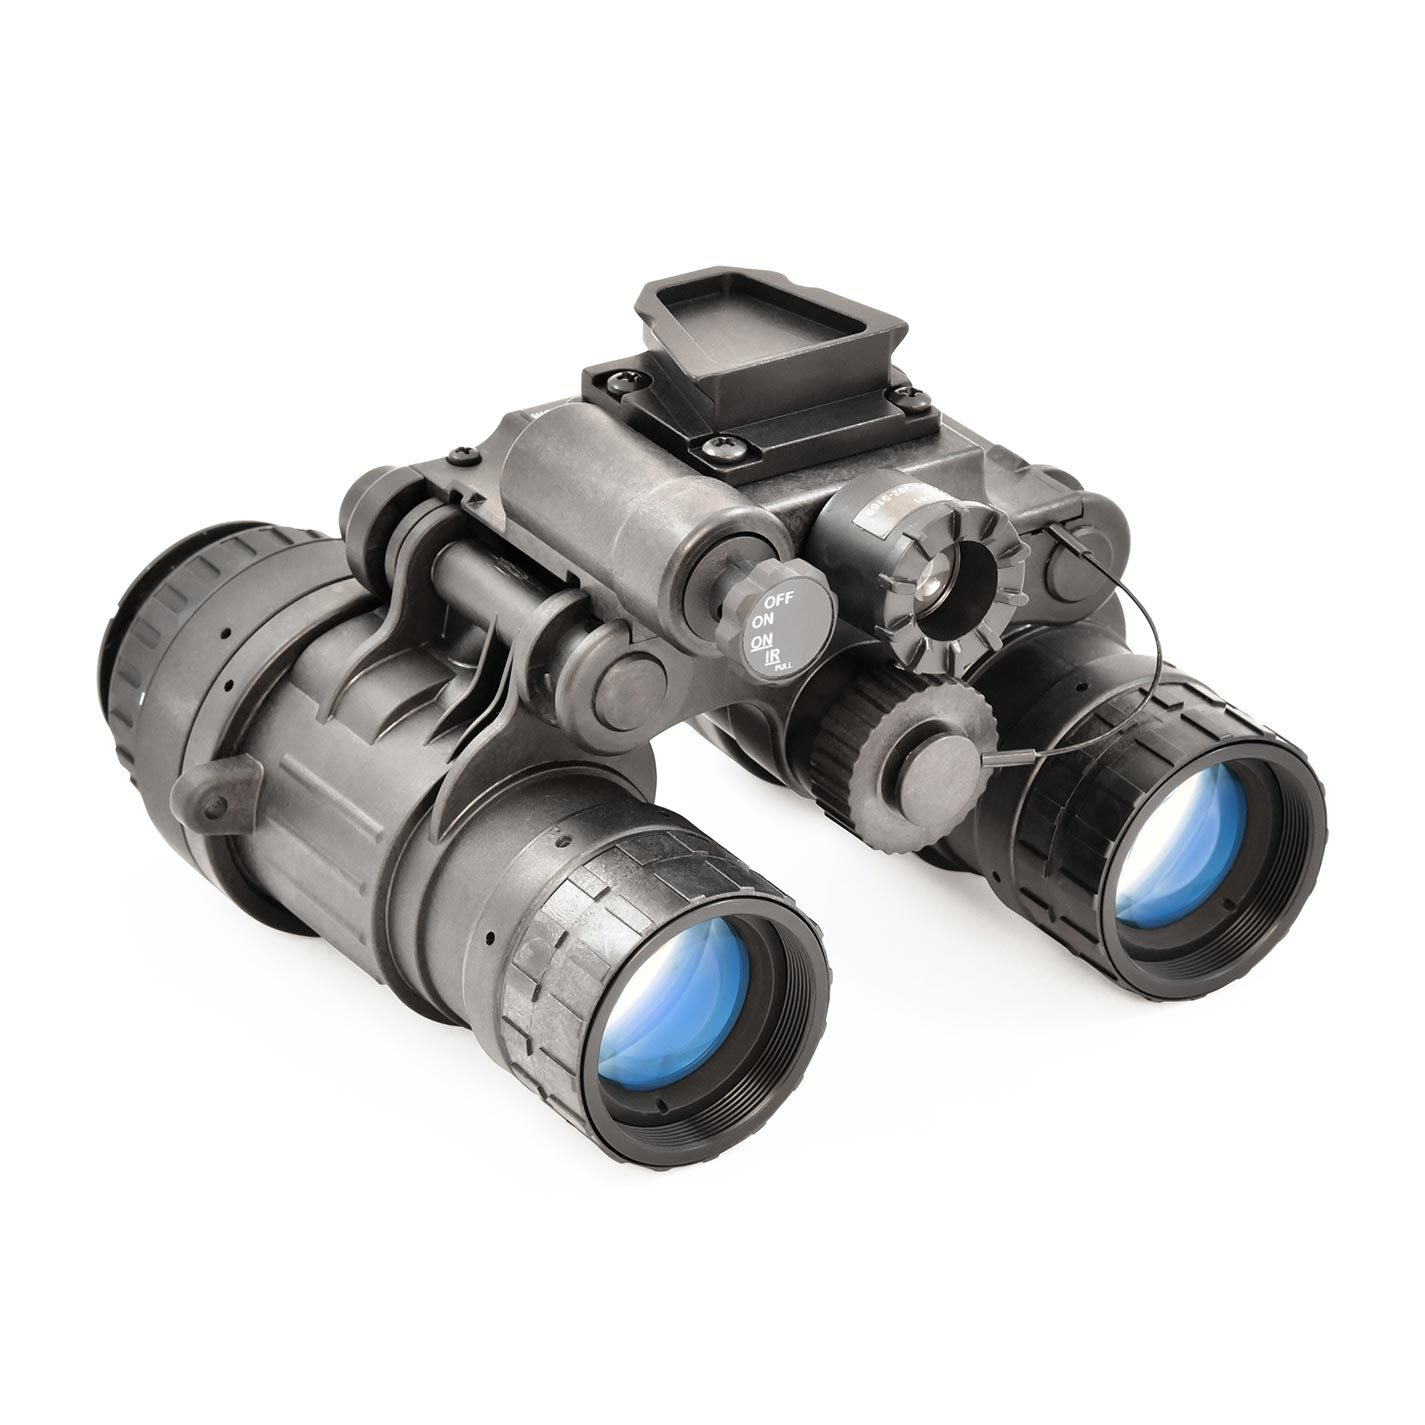 BNVD Night Vision Binocular - No Gain